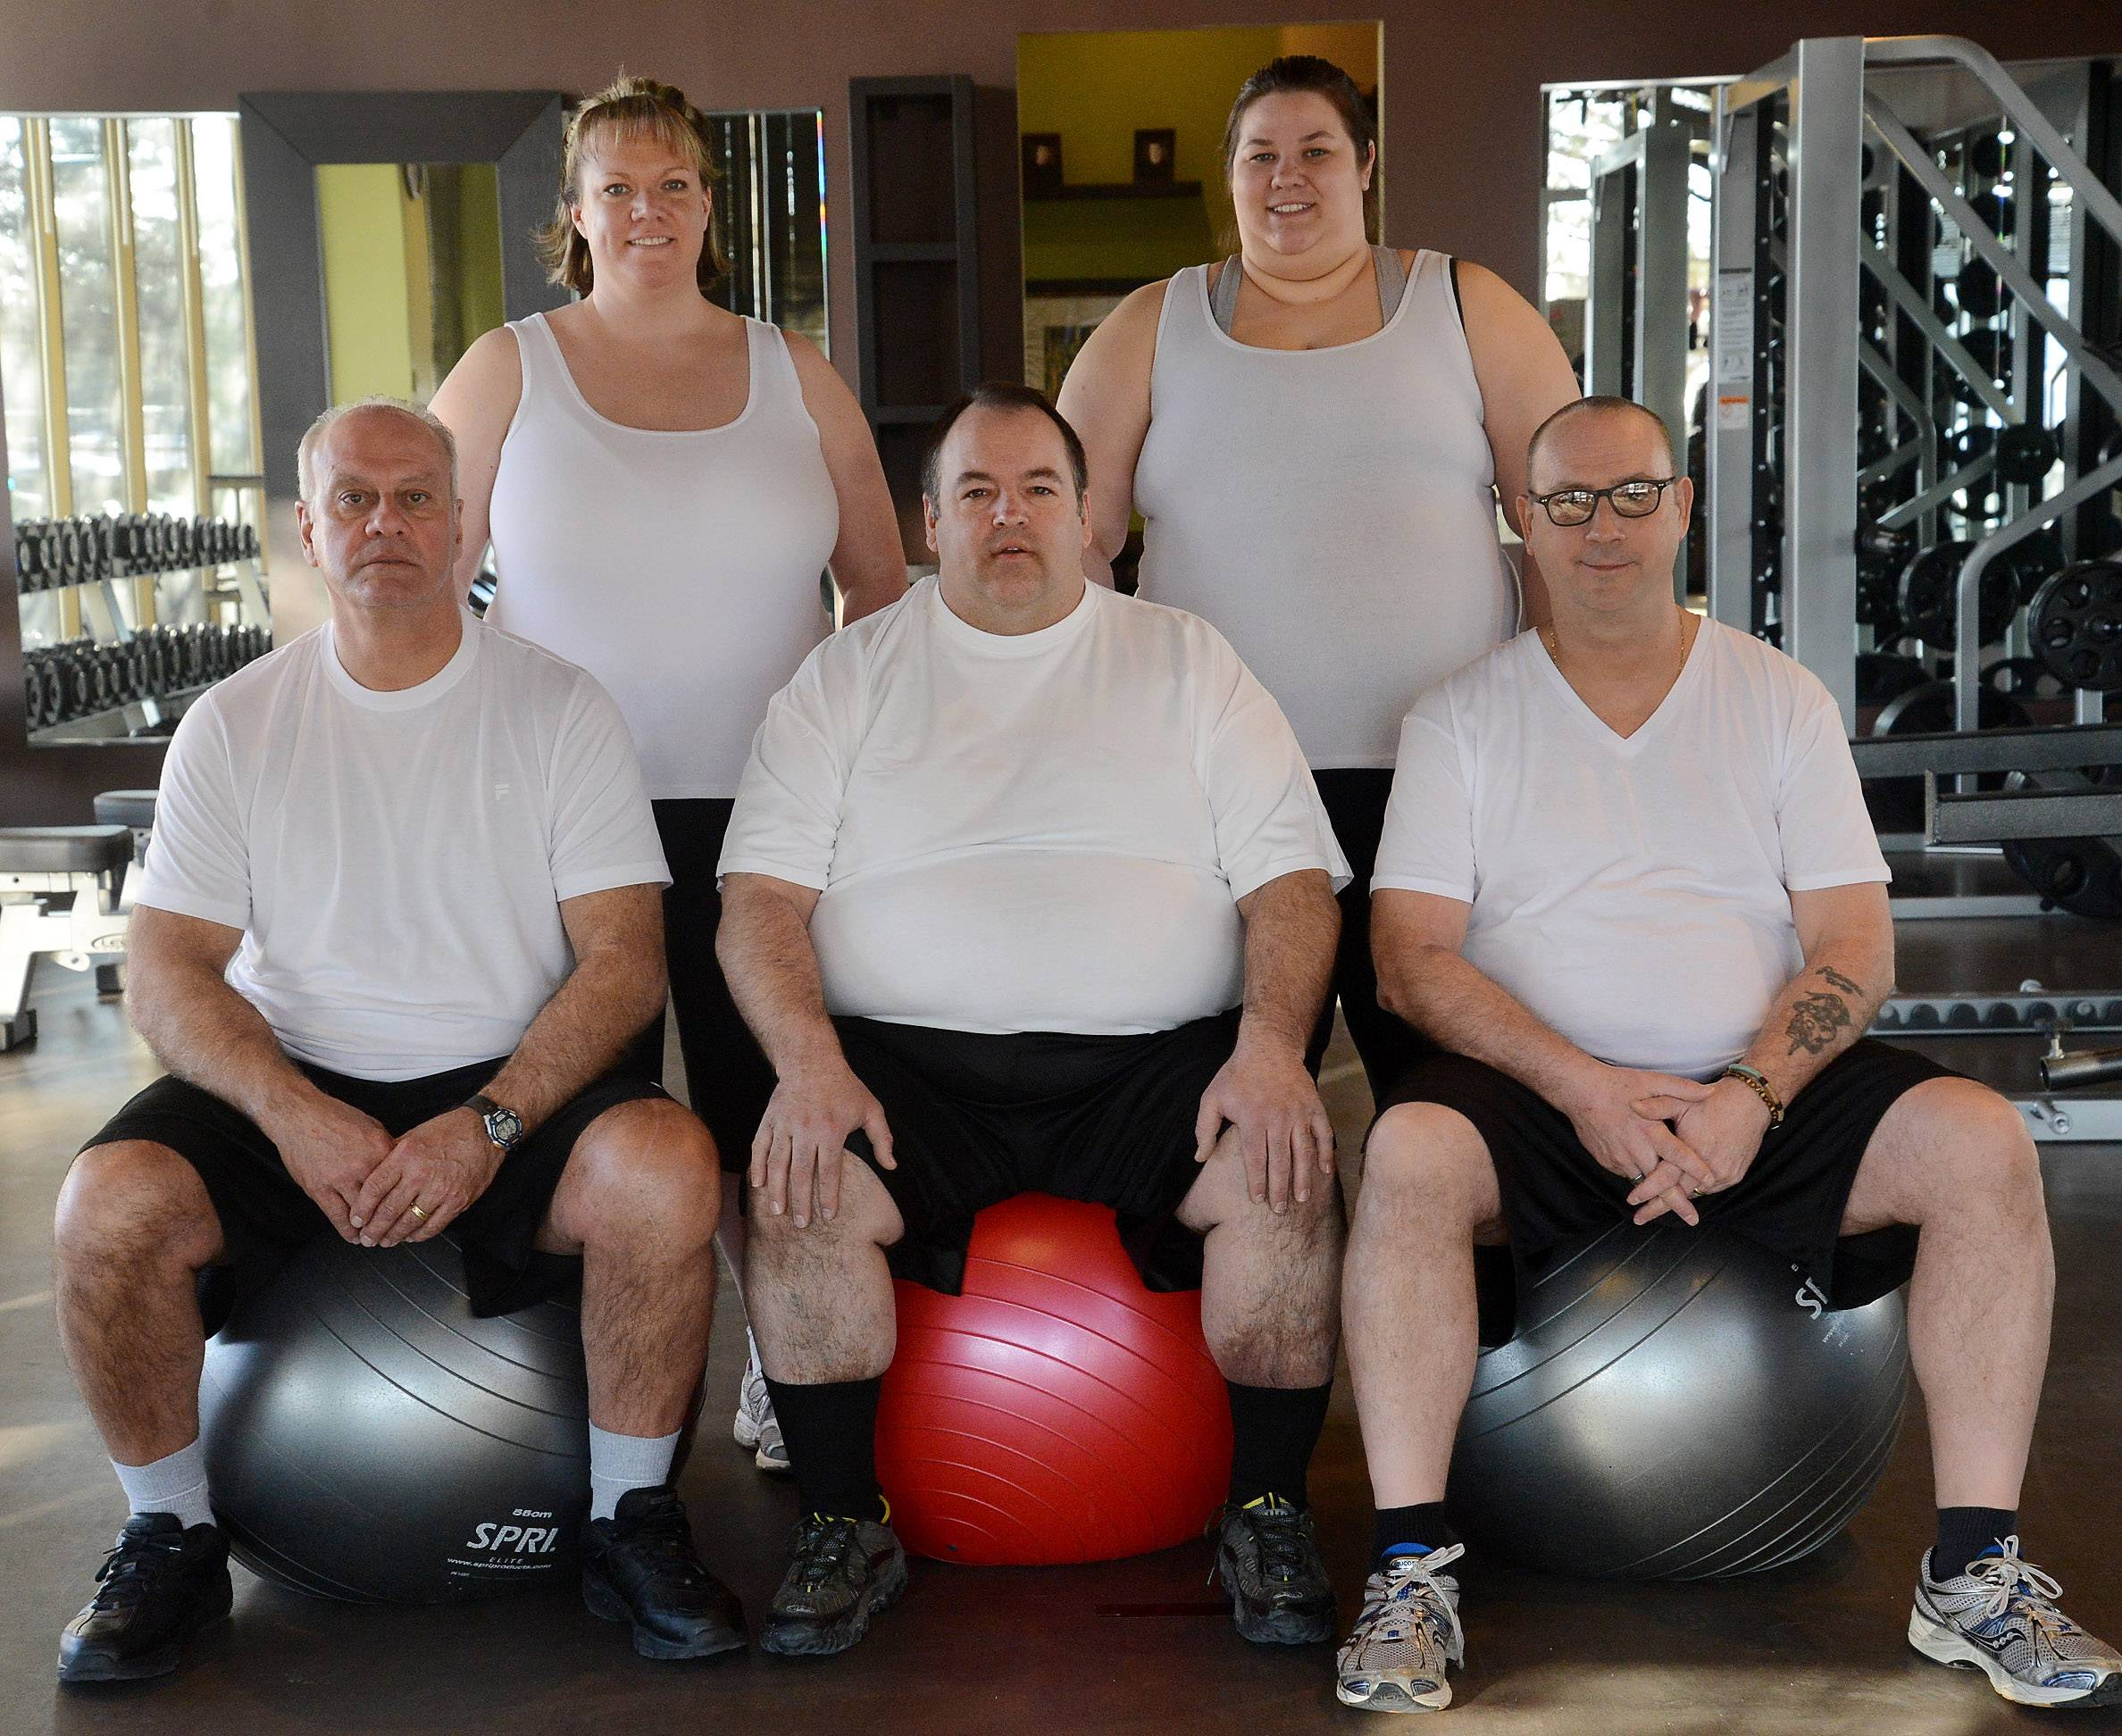 Introducing the 2014 Fittest Loser Challenge contestants: from left, Chris Kalamatas, Cheryl Seibert, John Bohanek, Allie Monroe and Tim Lange.